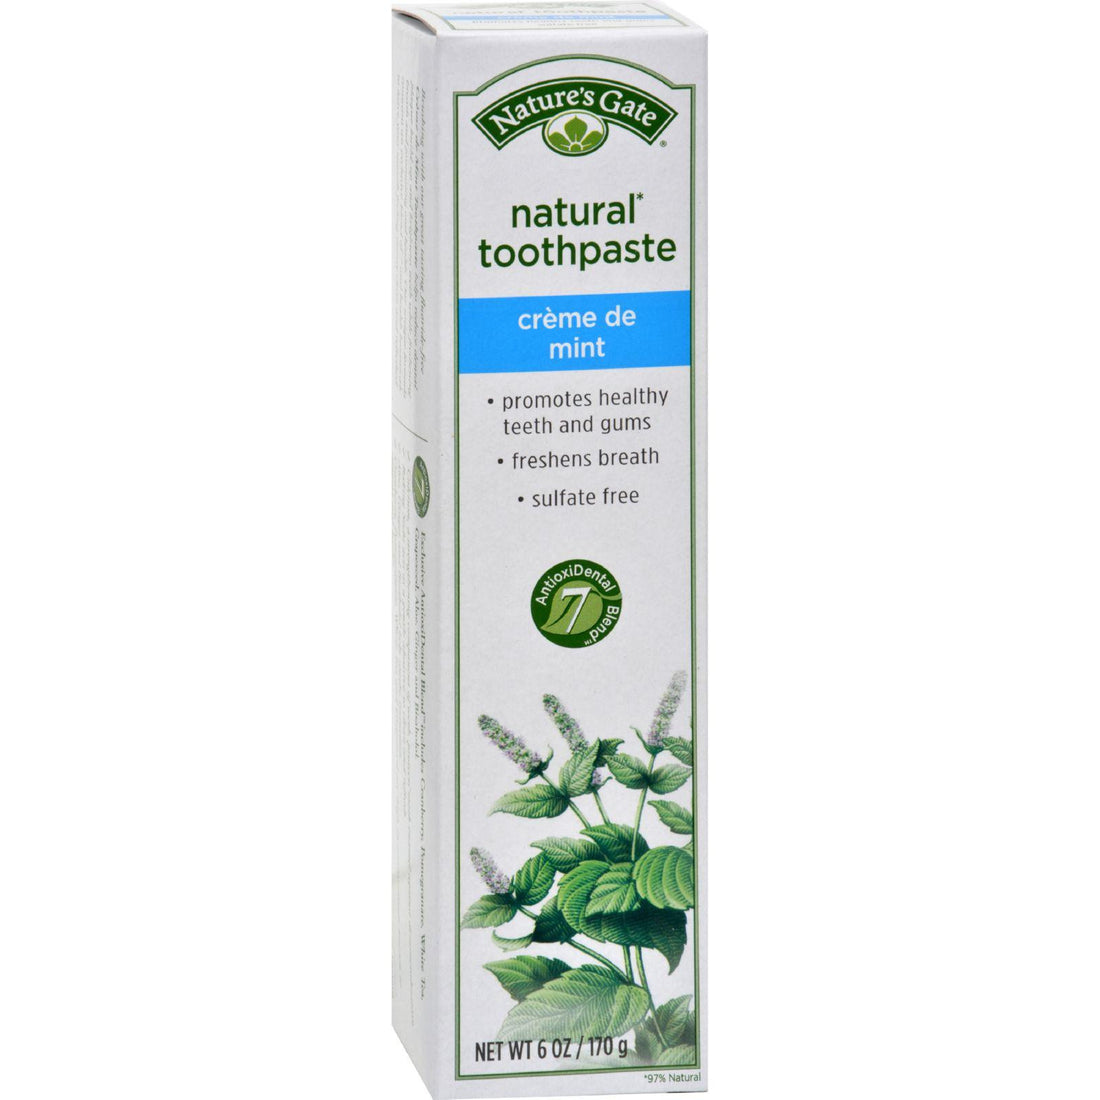 Mother Mantis: Nature's Gate Natural Toothpaste Creme De Mint Flouride Free - 6 Oz - Case Of 6 Nature's Gate